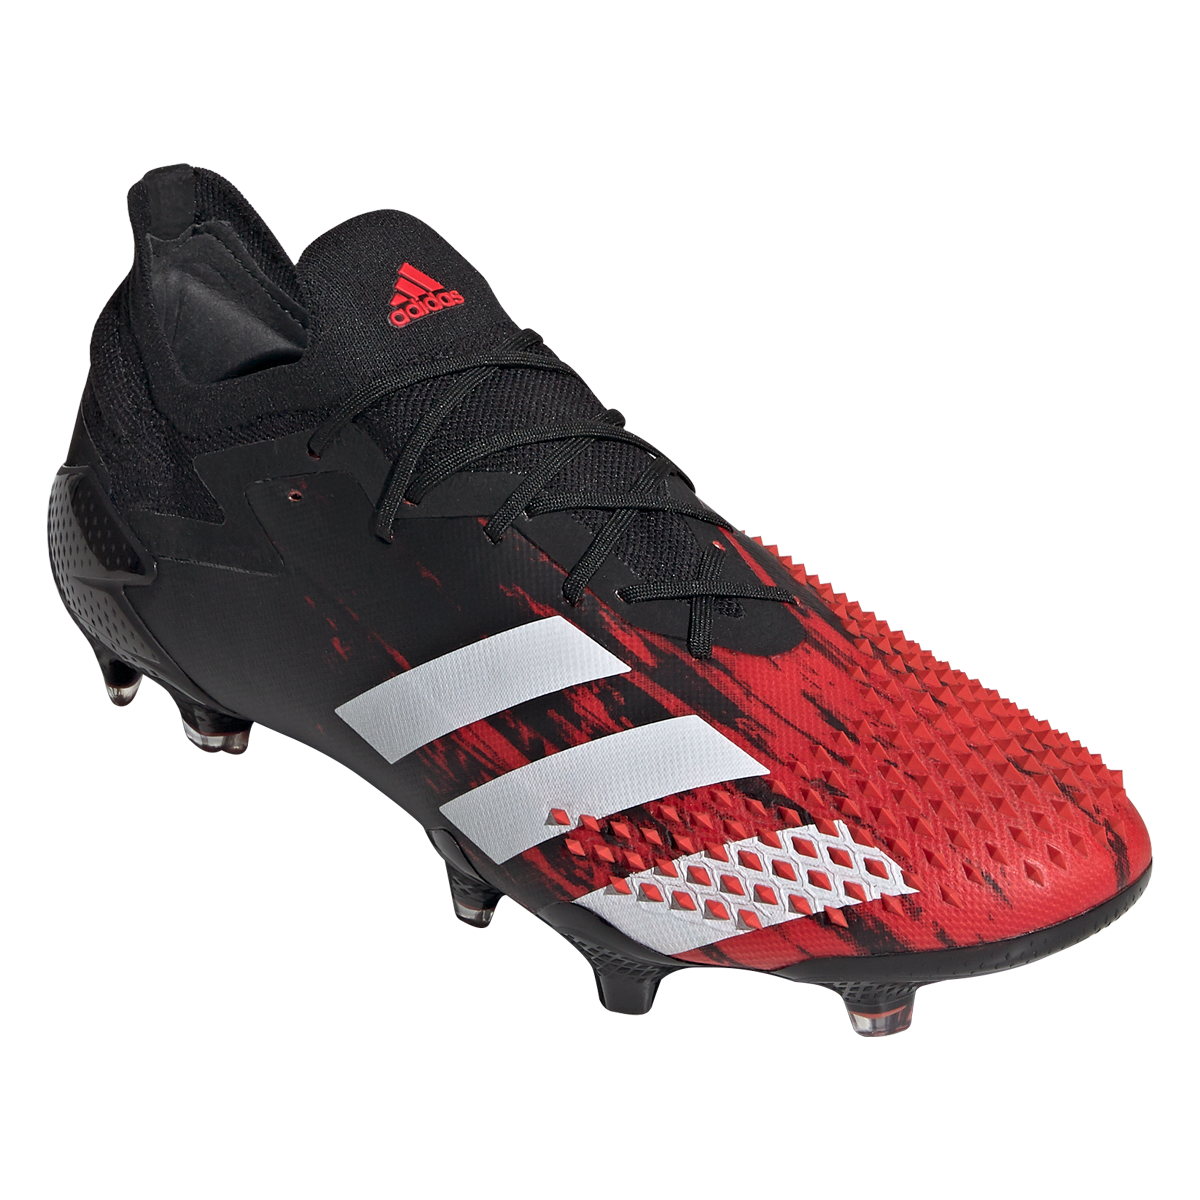 Organo forma Antagonismo  Pin on soccer boots I gotta cop